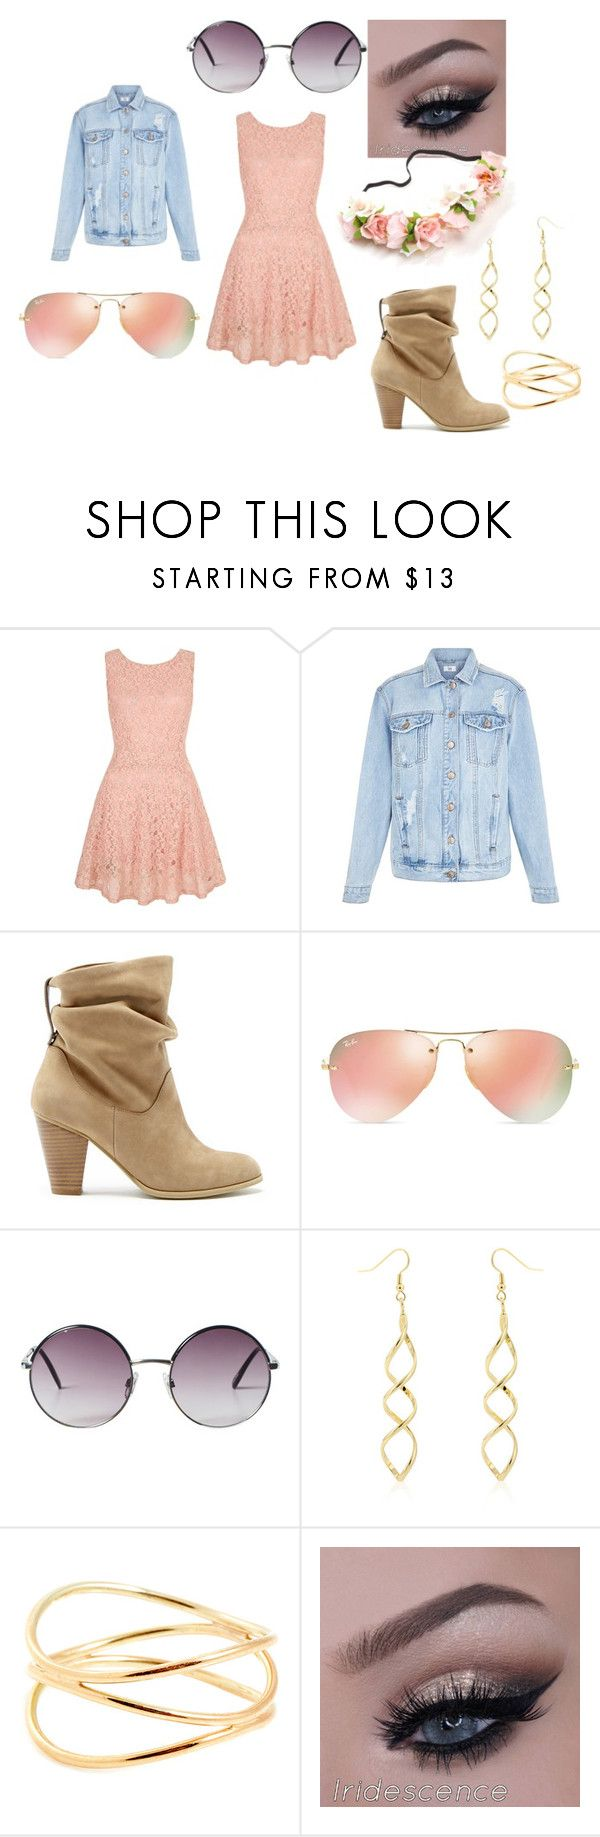 Top 25+ best Easter outfit ideas on Pinterest | Floral clothing ...